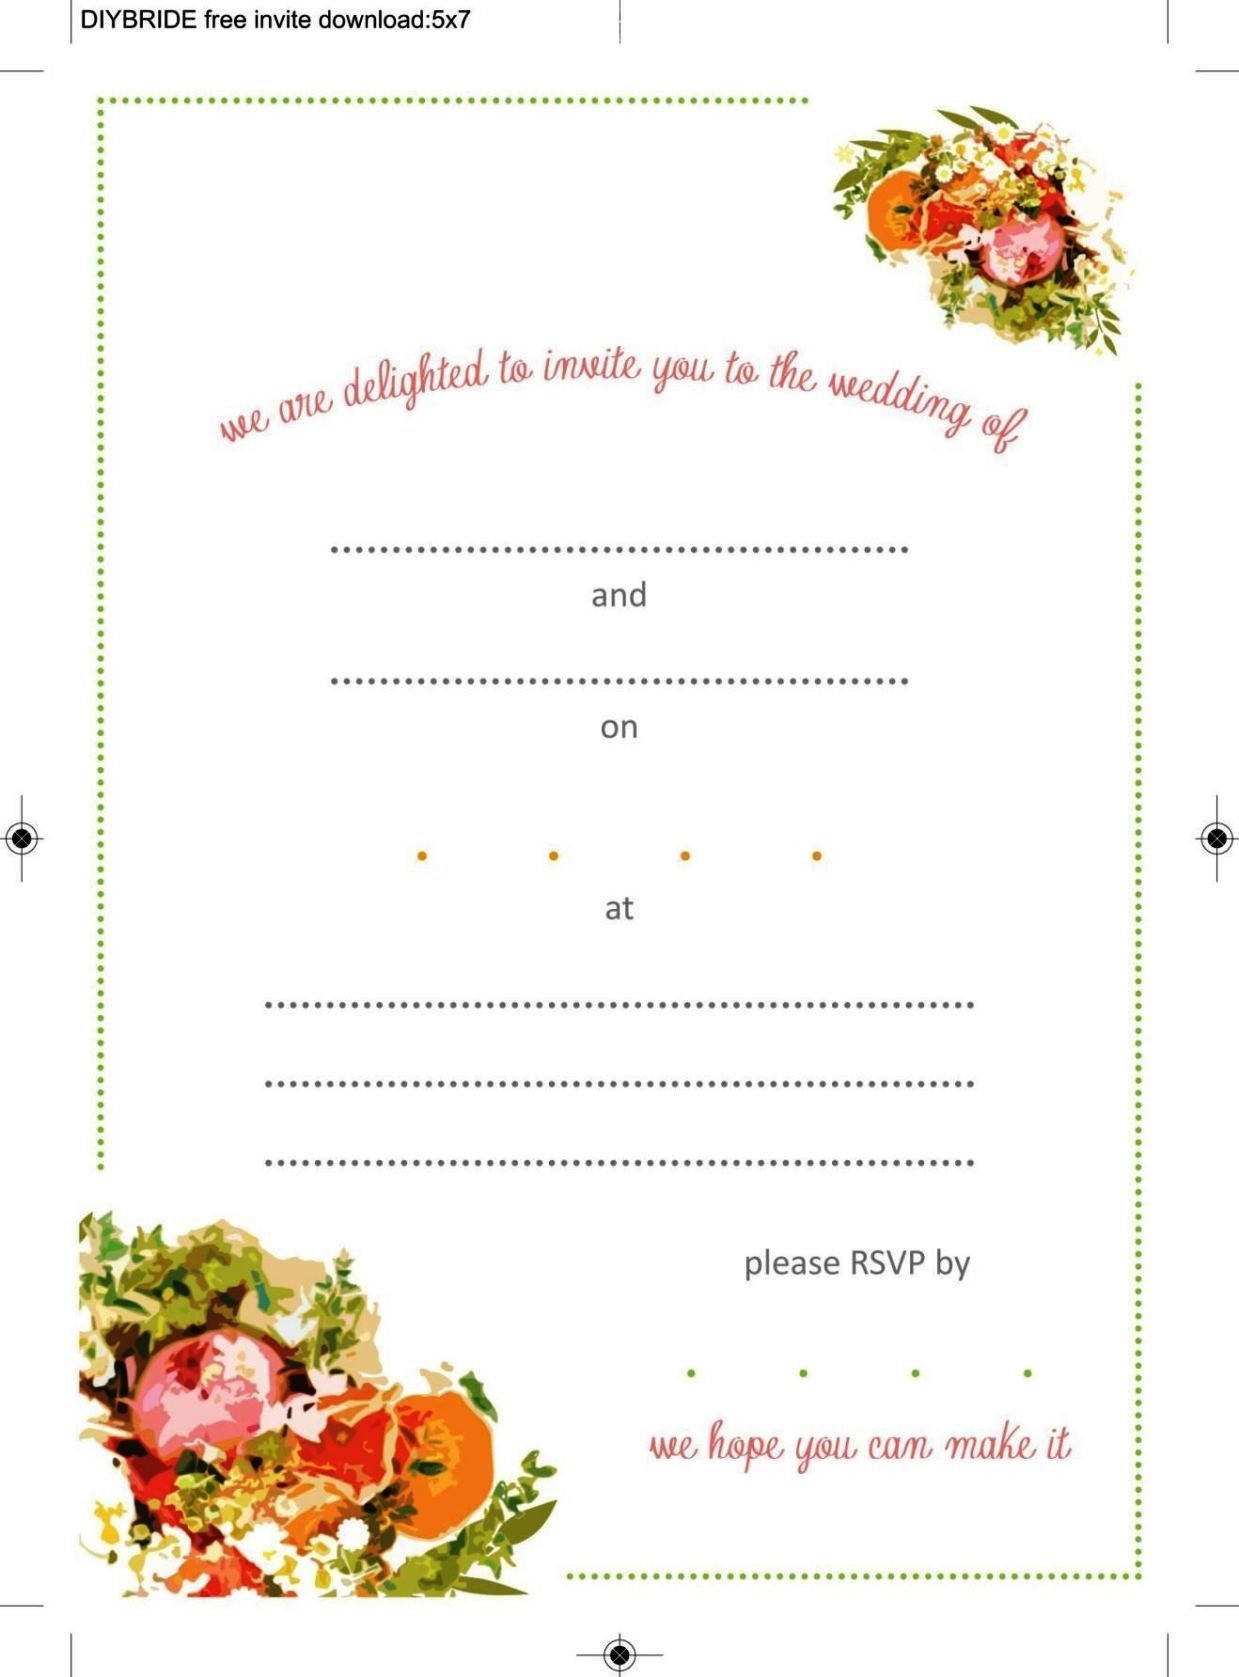 Free invitation templates for word 2010 sampletemplatess sampletemplatess for Words 2010 free